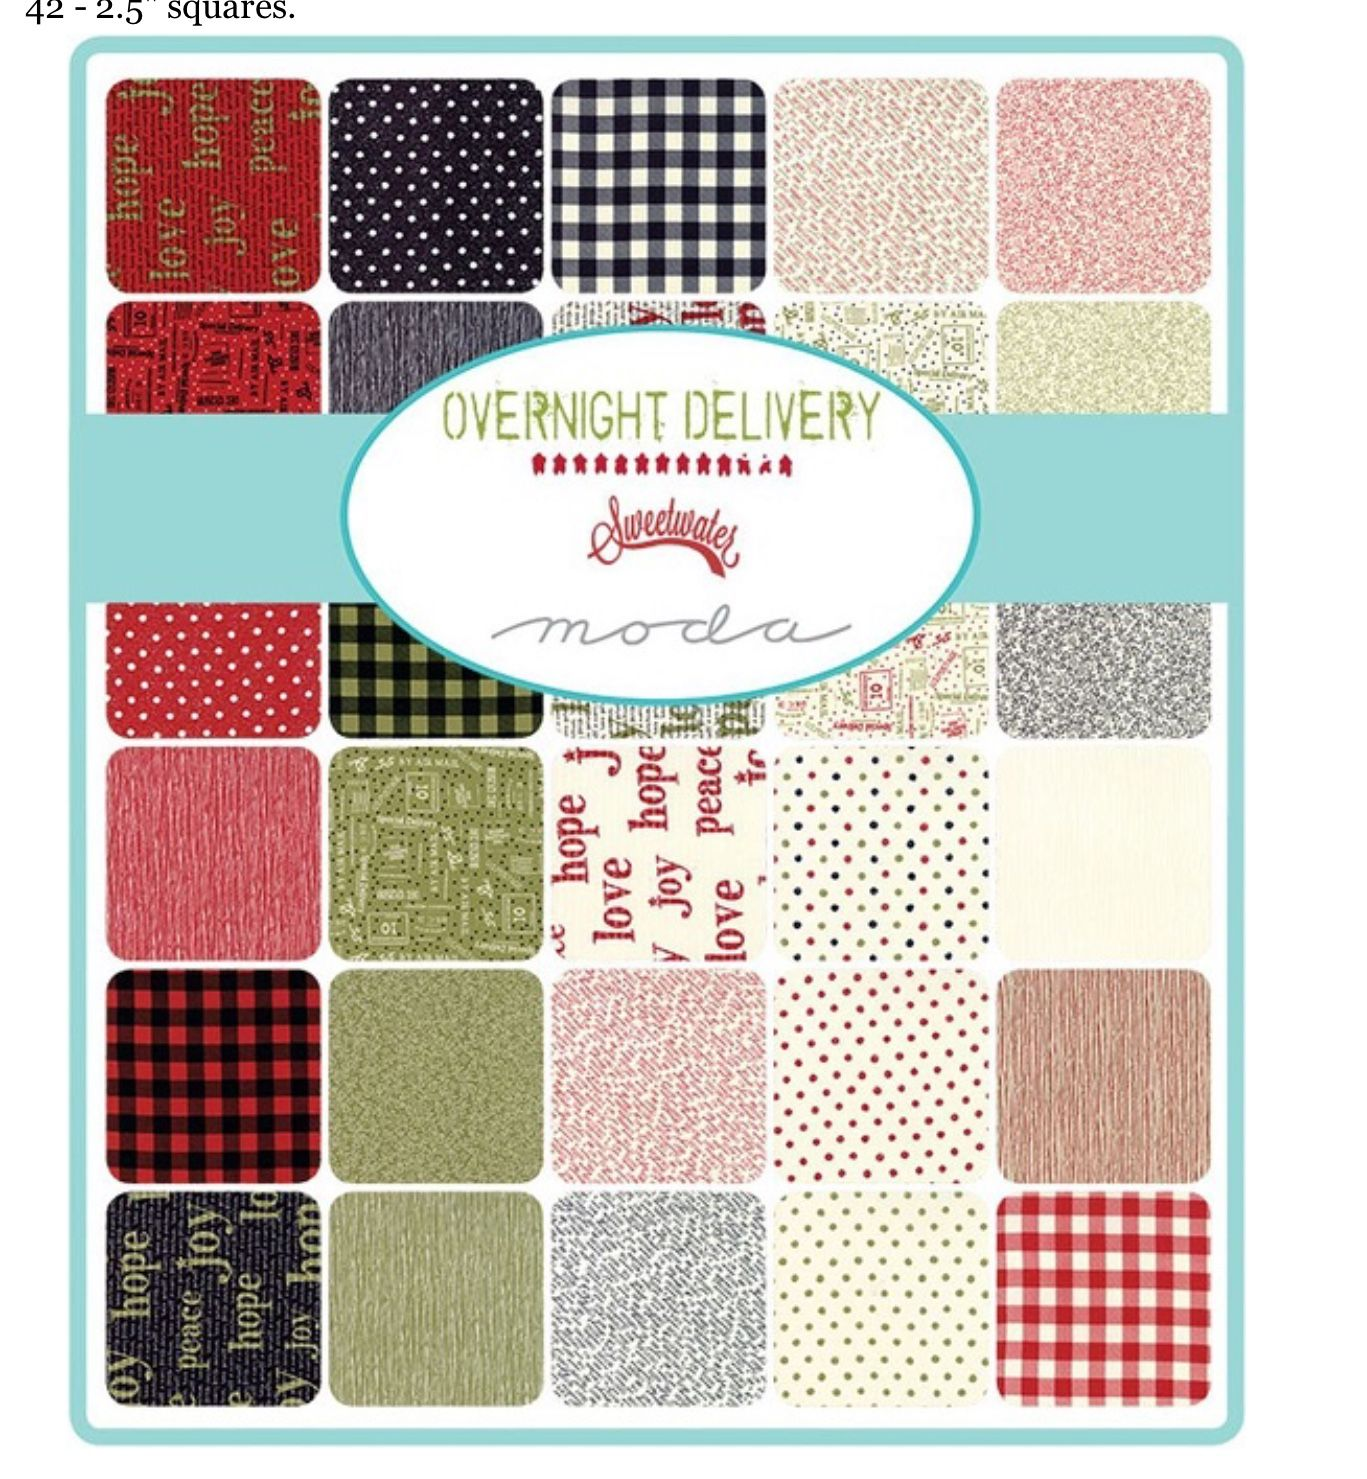 Sweet Tea cotton Layer cake squares  by Sweetwater for Moda fabrics